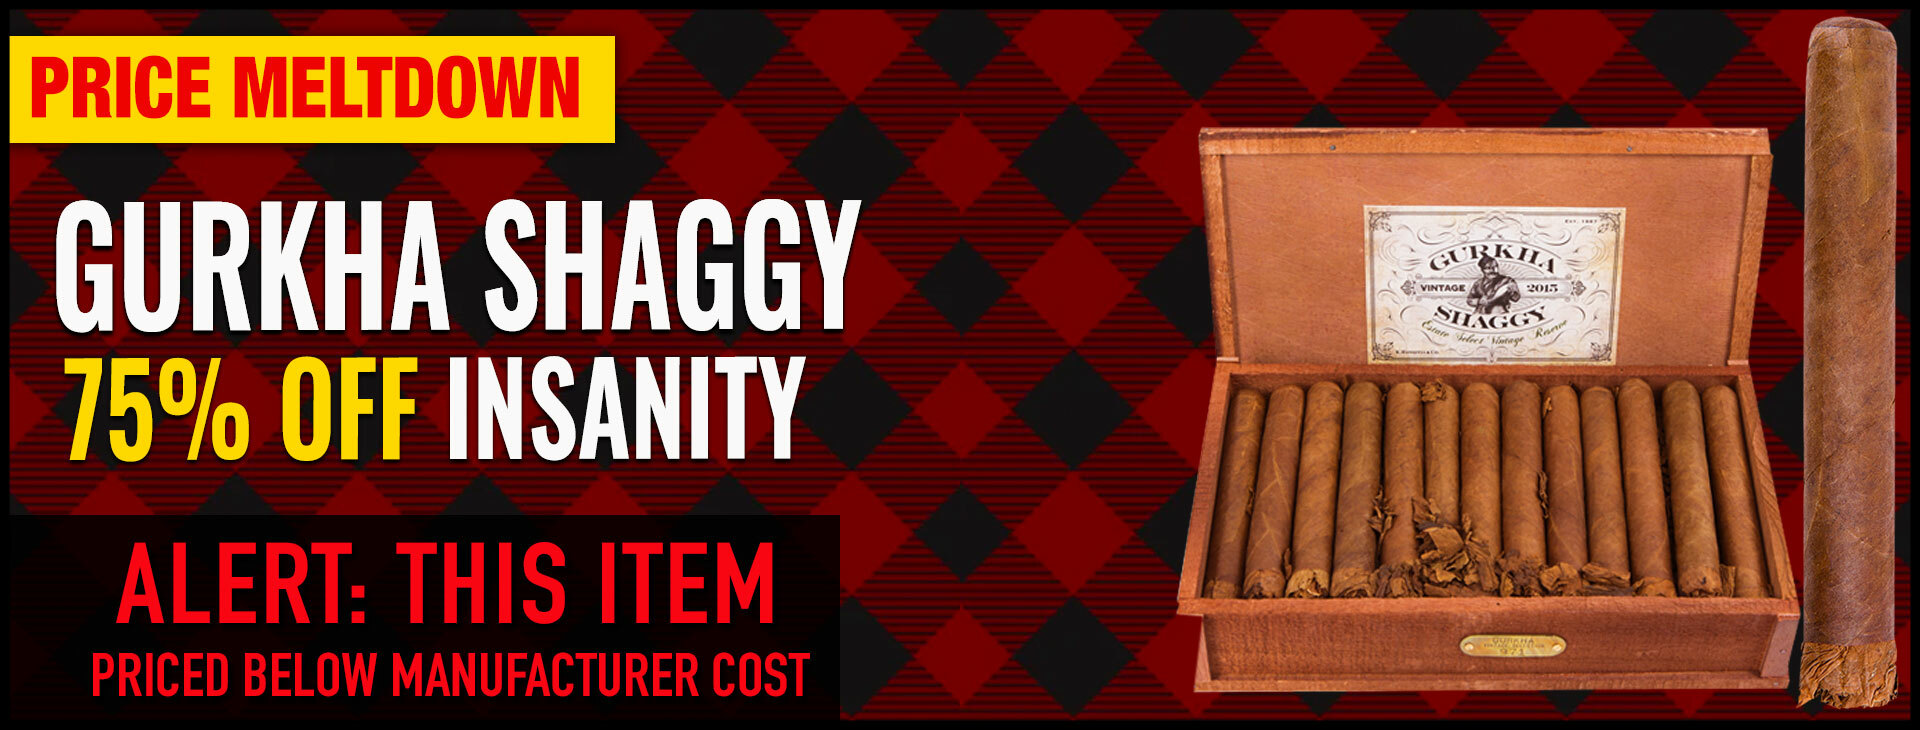 PRICE MELTDOWN: 75% OFF GURKHA SHAGGY